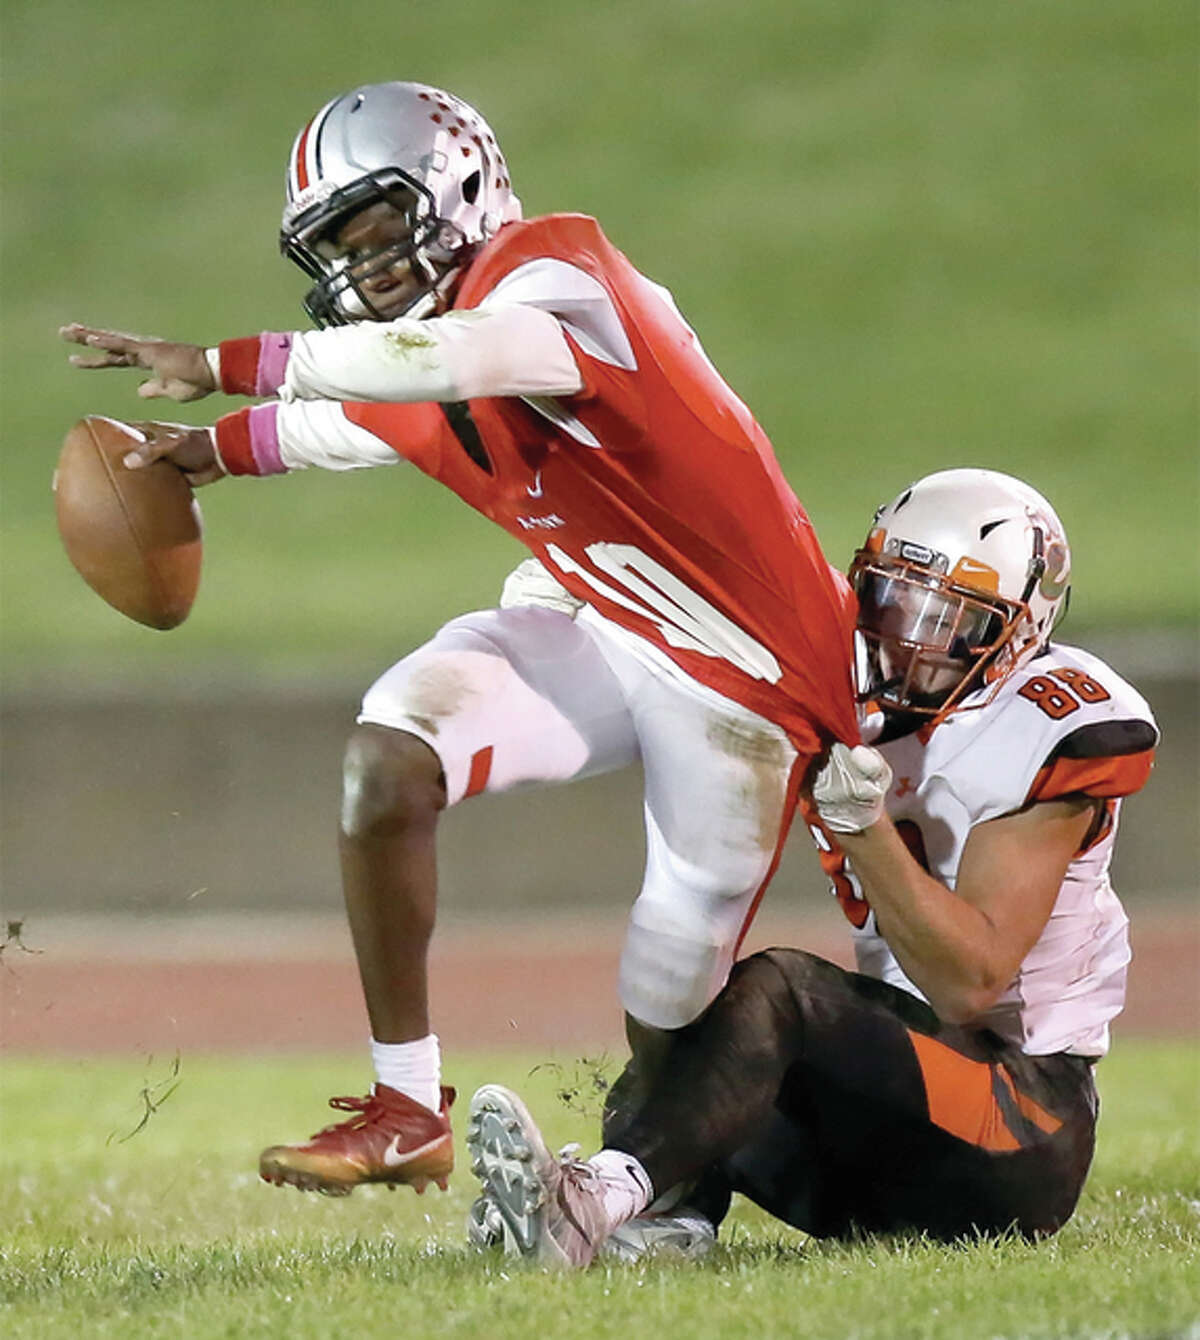 Alton quarterback Taylor Price (left) is brought down by Edwardsville's Nathan Kolesa on Friday night in Alton.